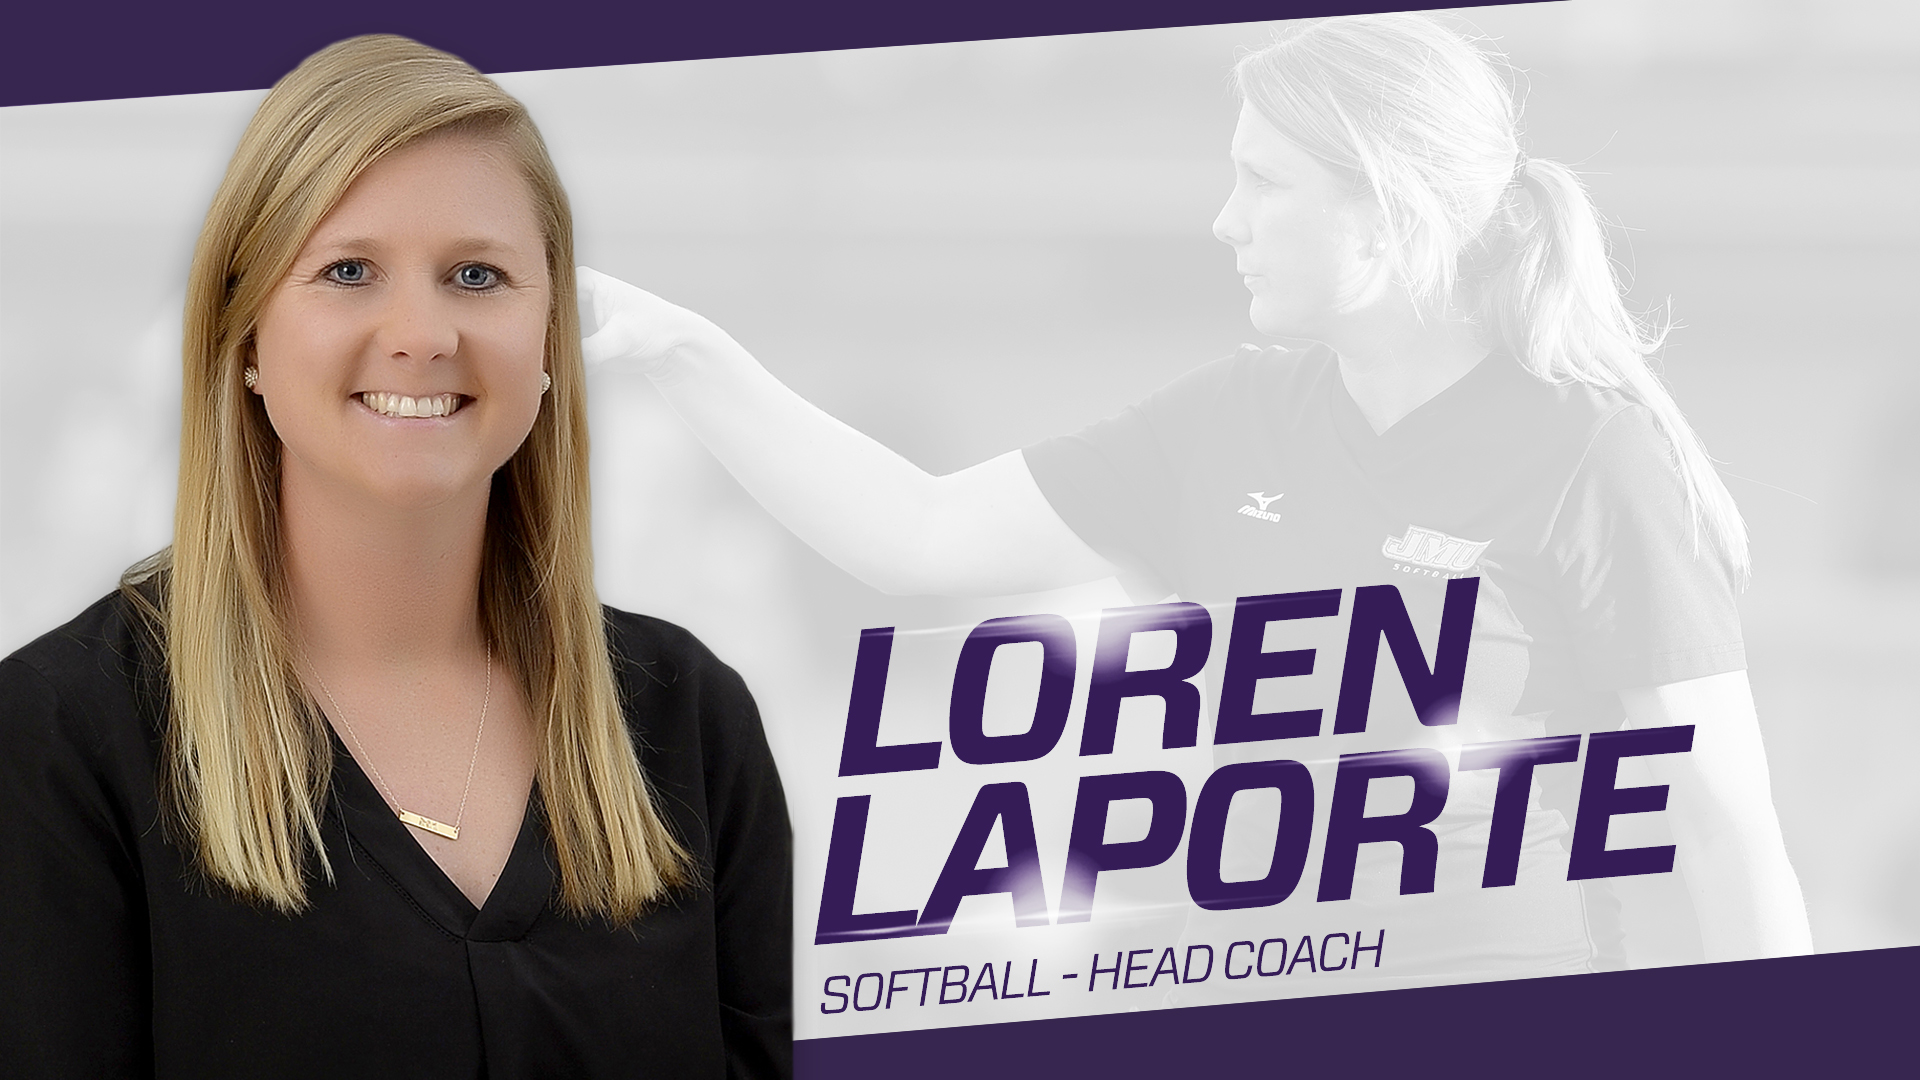 Softball: LaPorte Signs Four-Year Extension as Head Coach of James Madison Softball